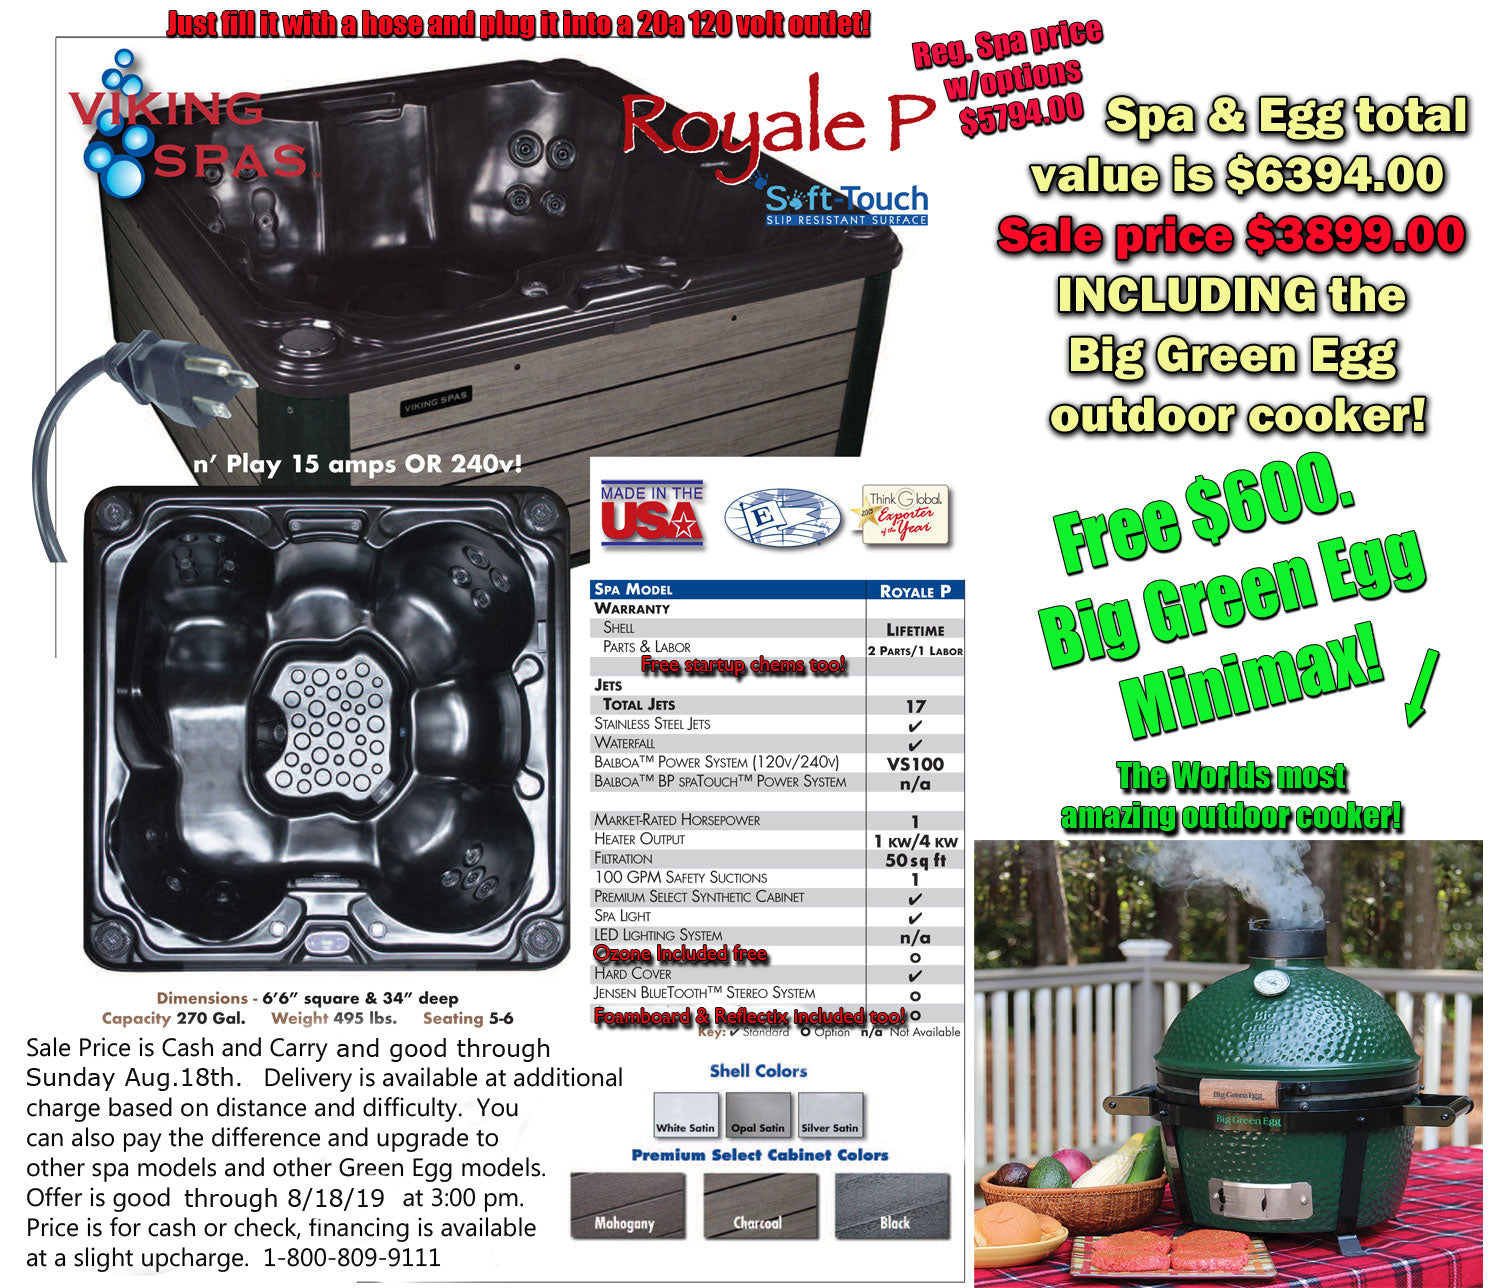 Special $6,394.00 Viking Royal P for just $3,899.00 and a Free Big Green Egg Minimax!